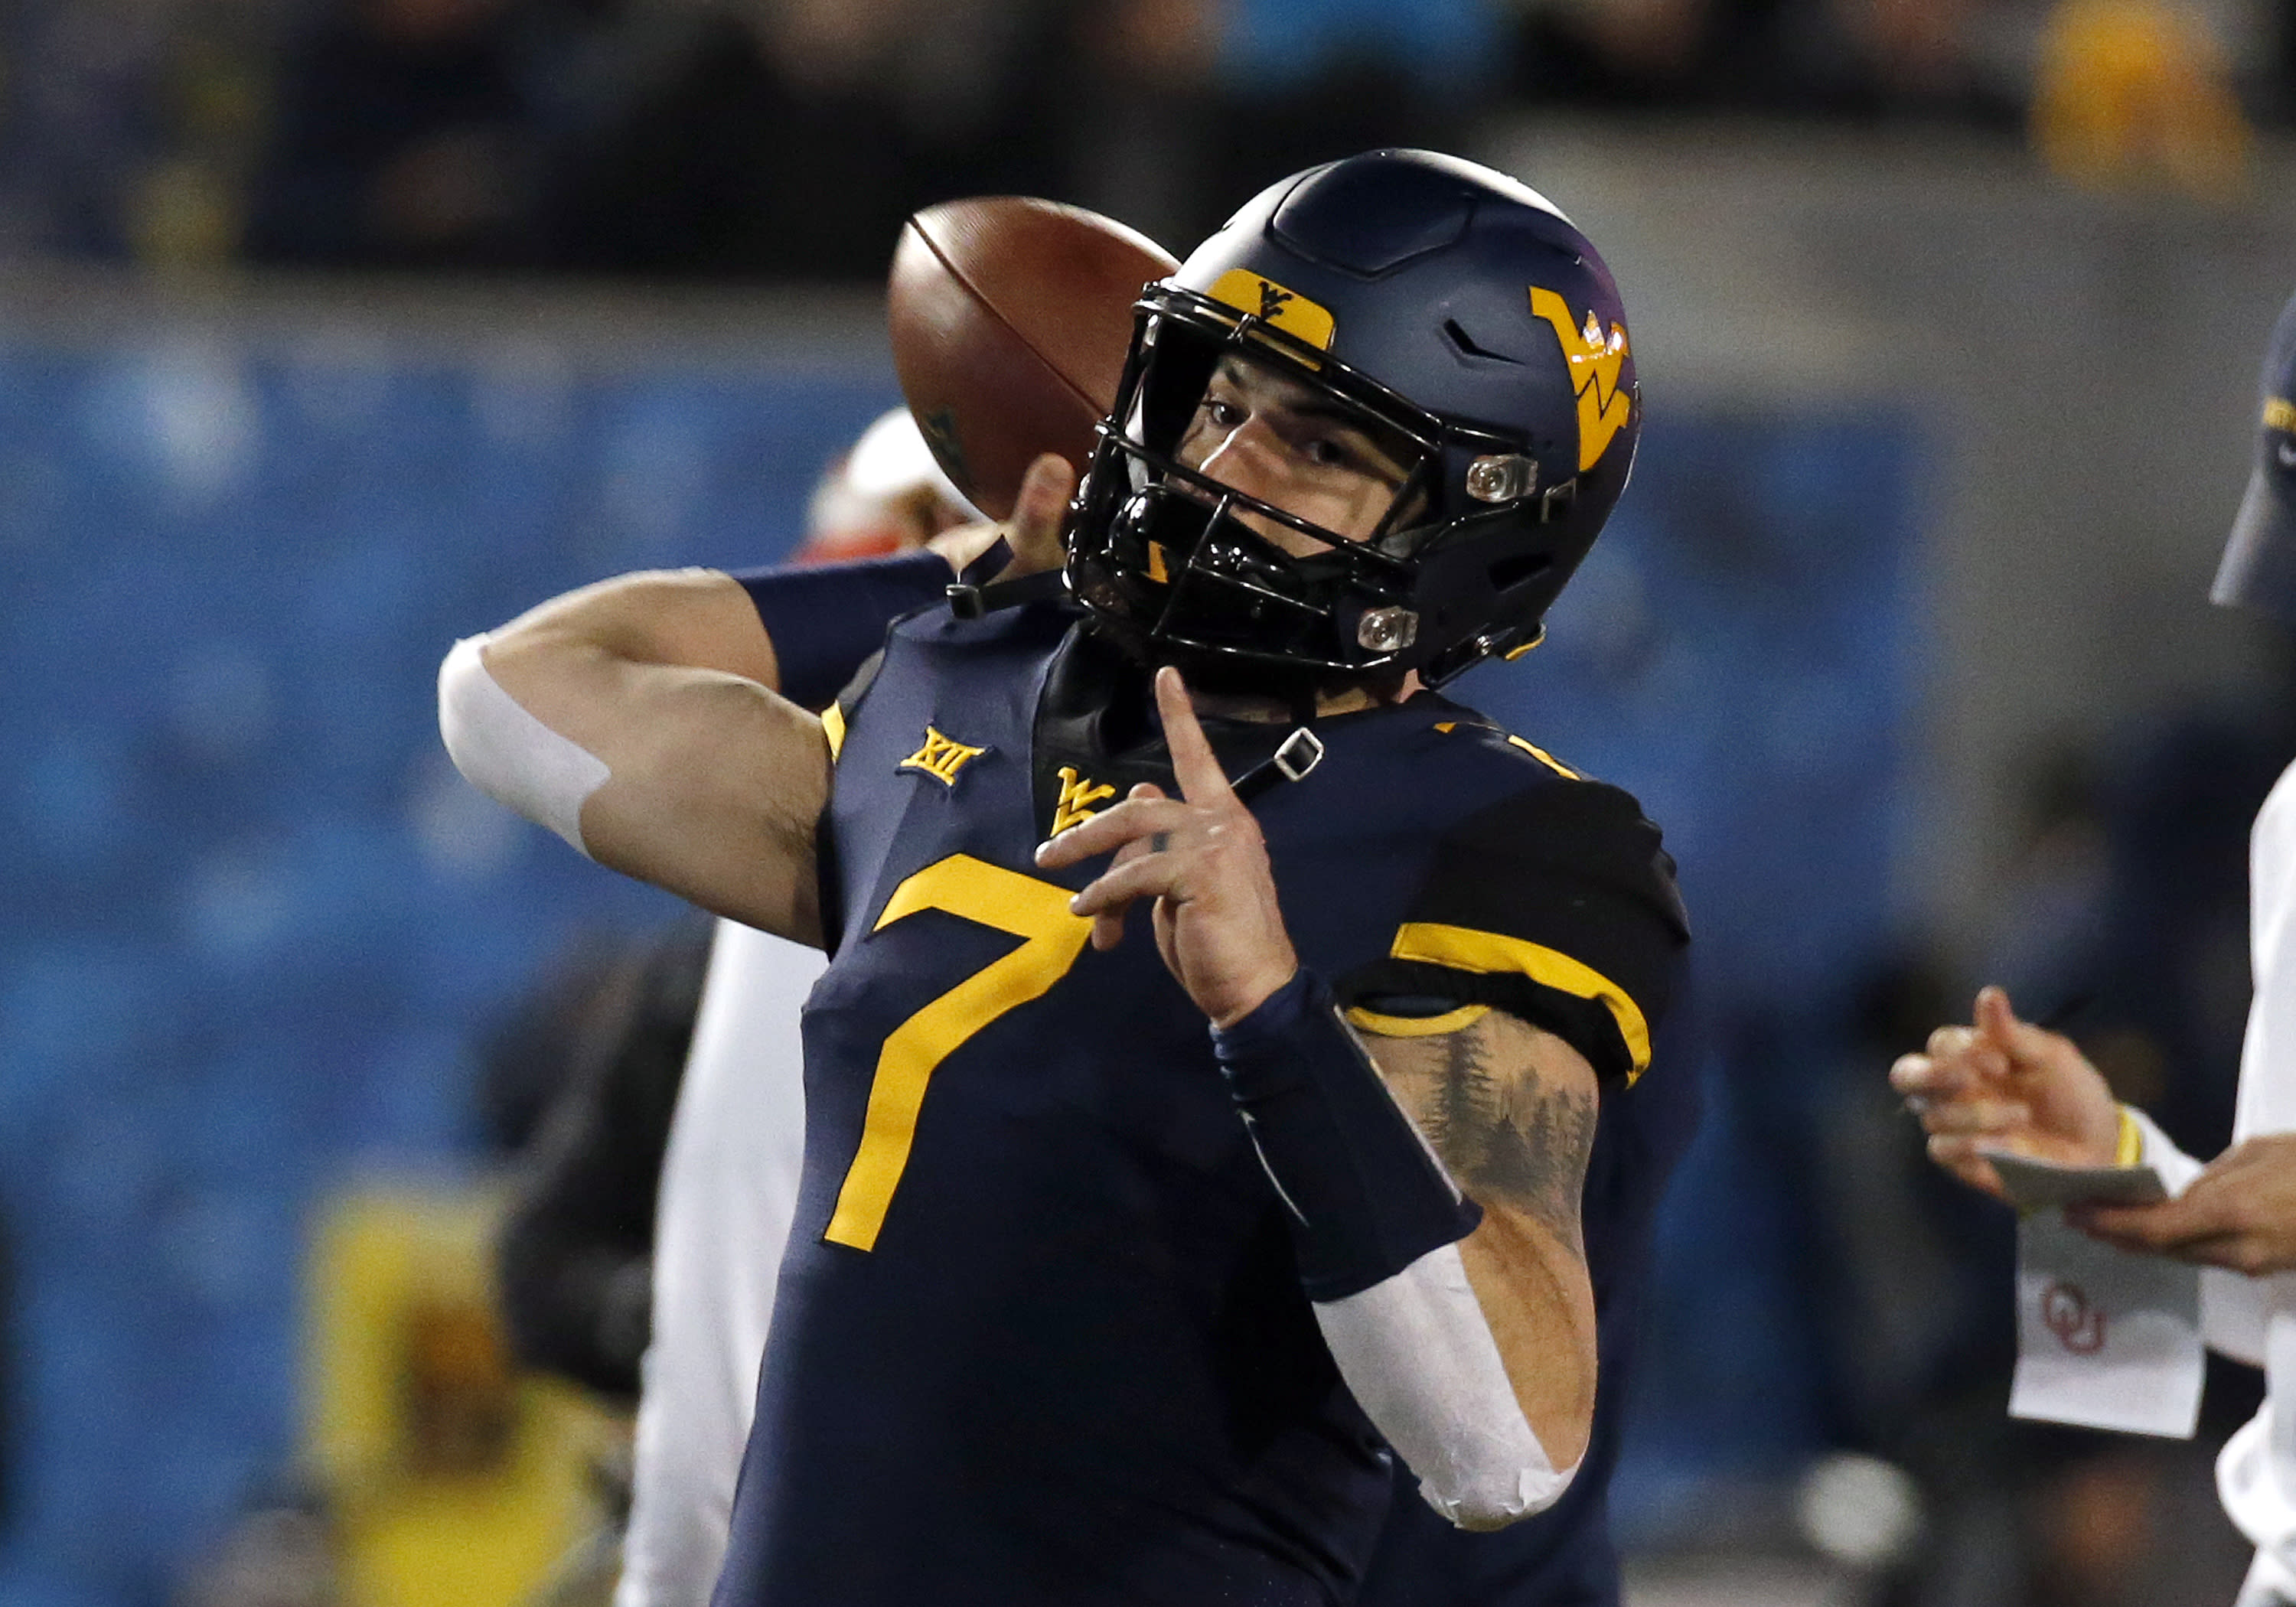 Will Grier: West Virginia QB skips Camping World Bowl against Syracuse - Yahoo Sports